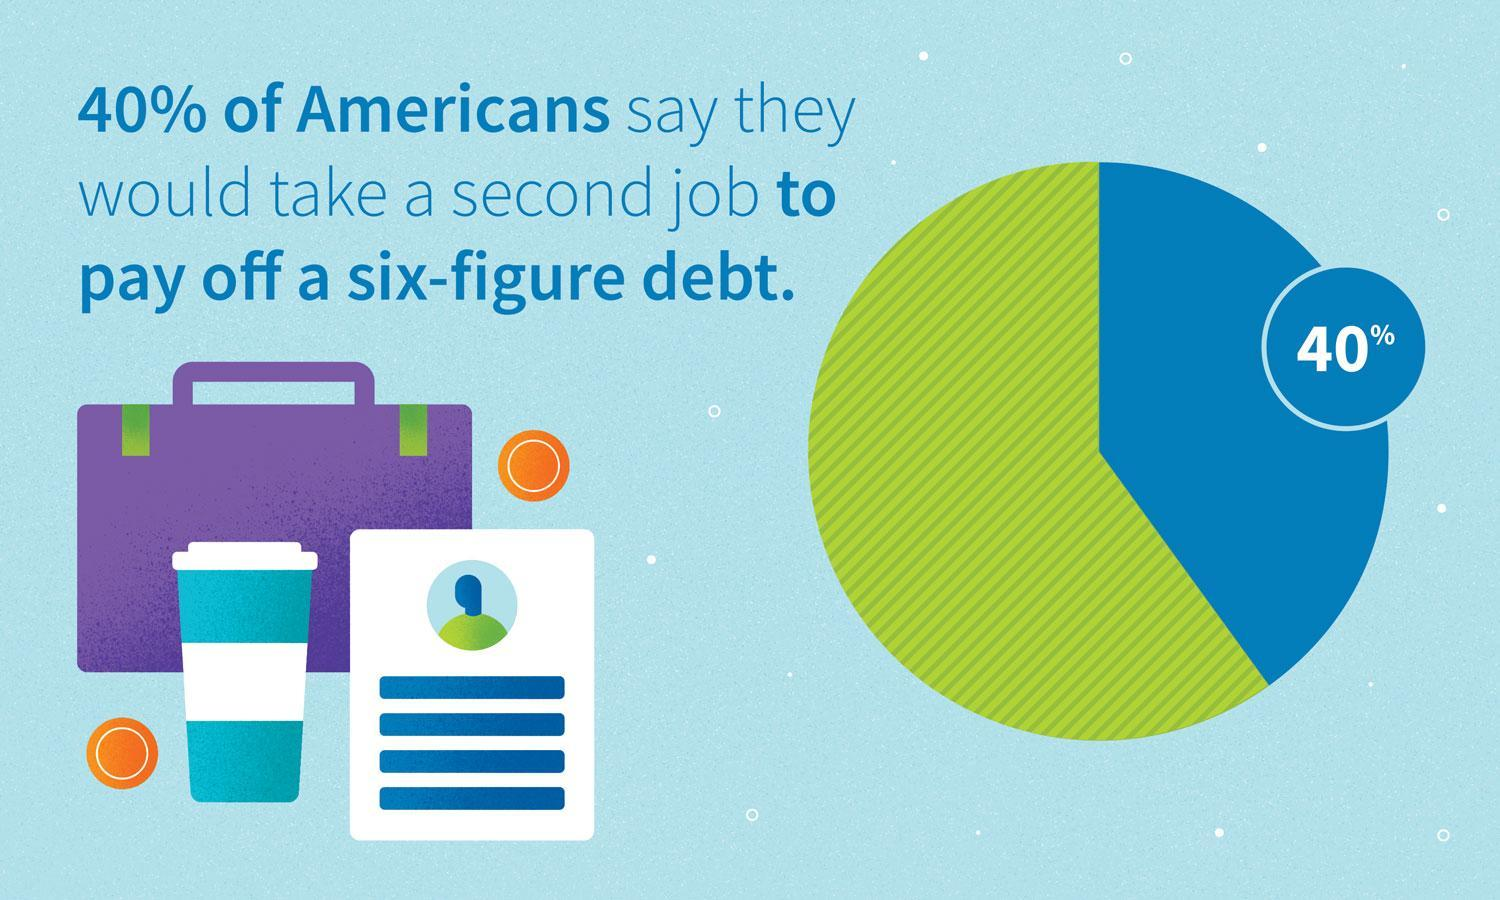 Graphic: 40% of Americans say they would take a second job to pay off a six-figure debt.